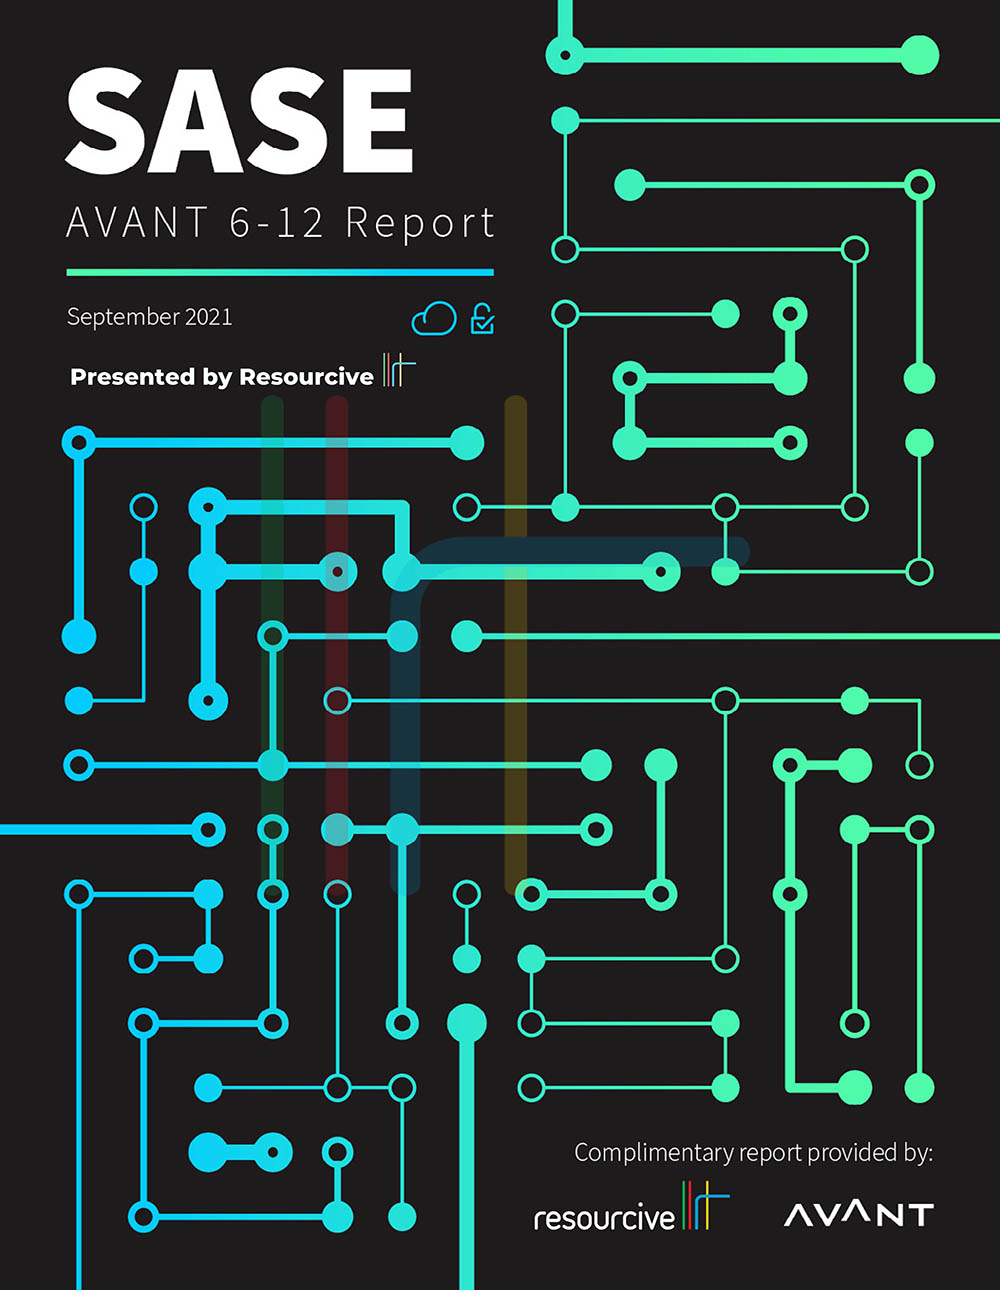 AVANT_6-12-Report-SASE_2021_presented by Resourcive_Page_01-2